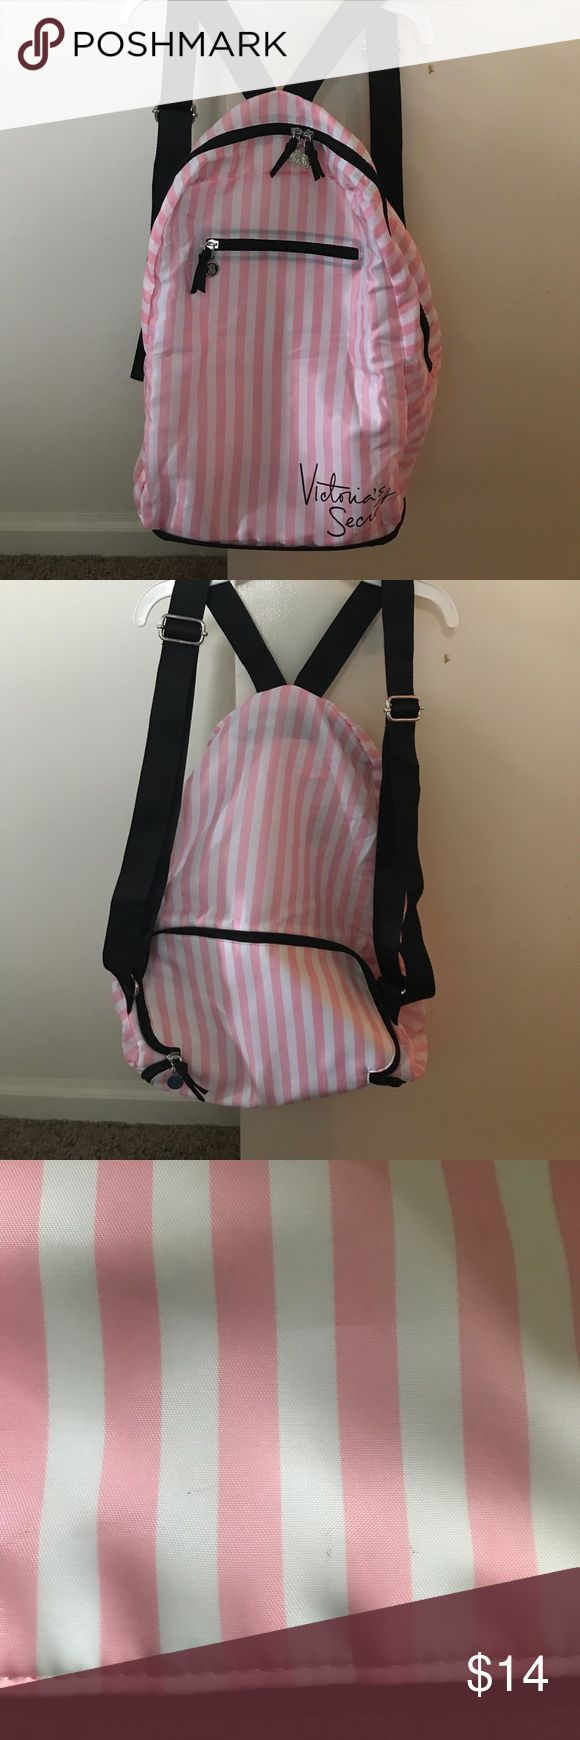 Victoria secret travel backpack Black and pink striped Victoria secret travel backpack. Never used. Was new with tags but had to wash to get ink out of. There is a few little spots in the last pic. Victoria's Secret Bags Backpacks